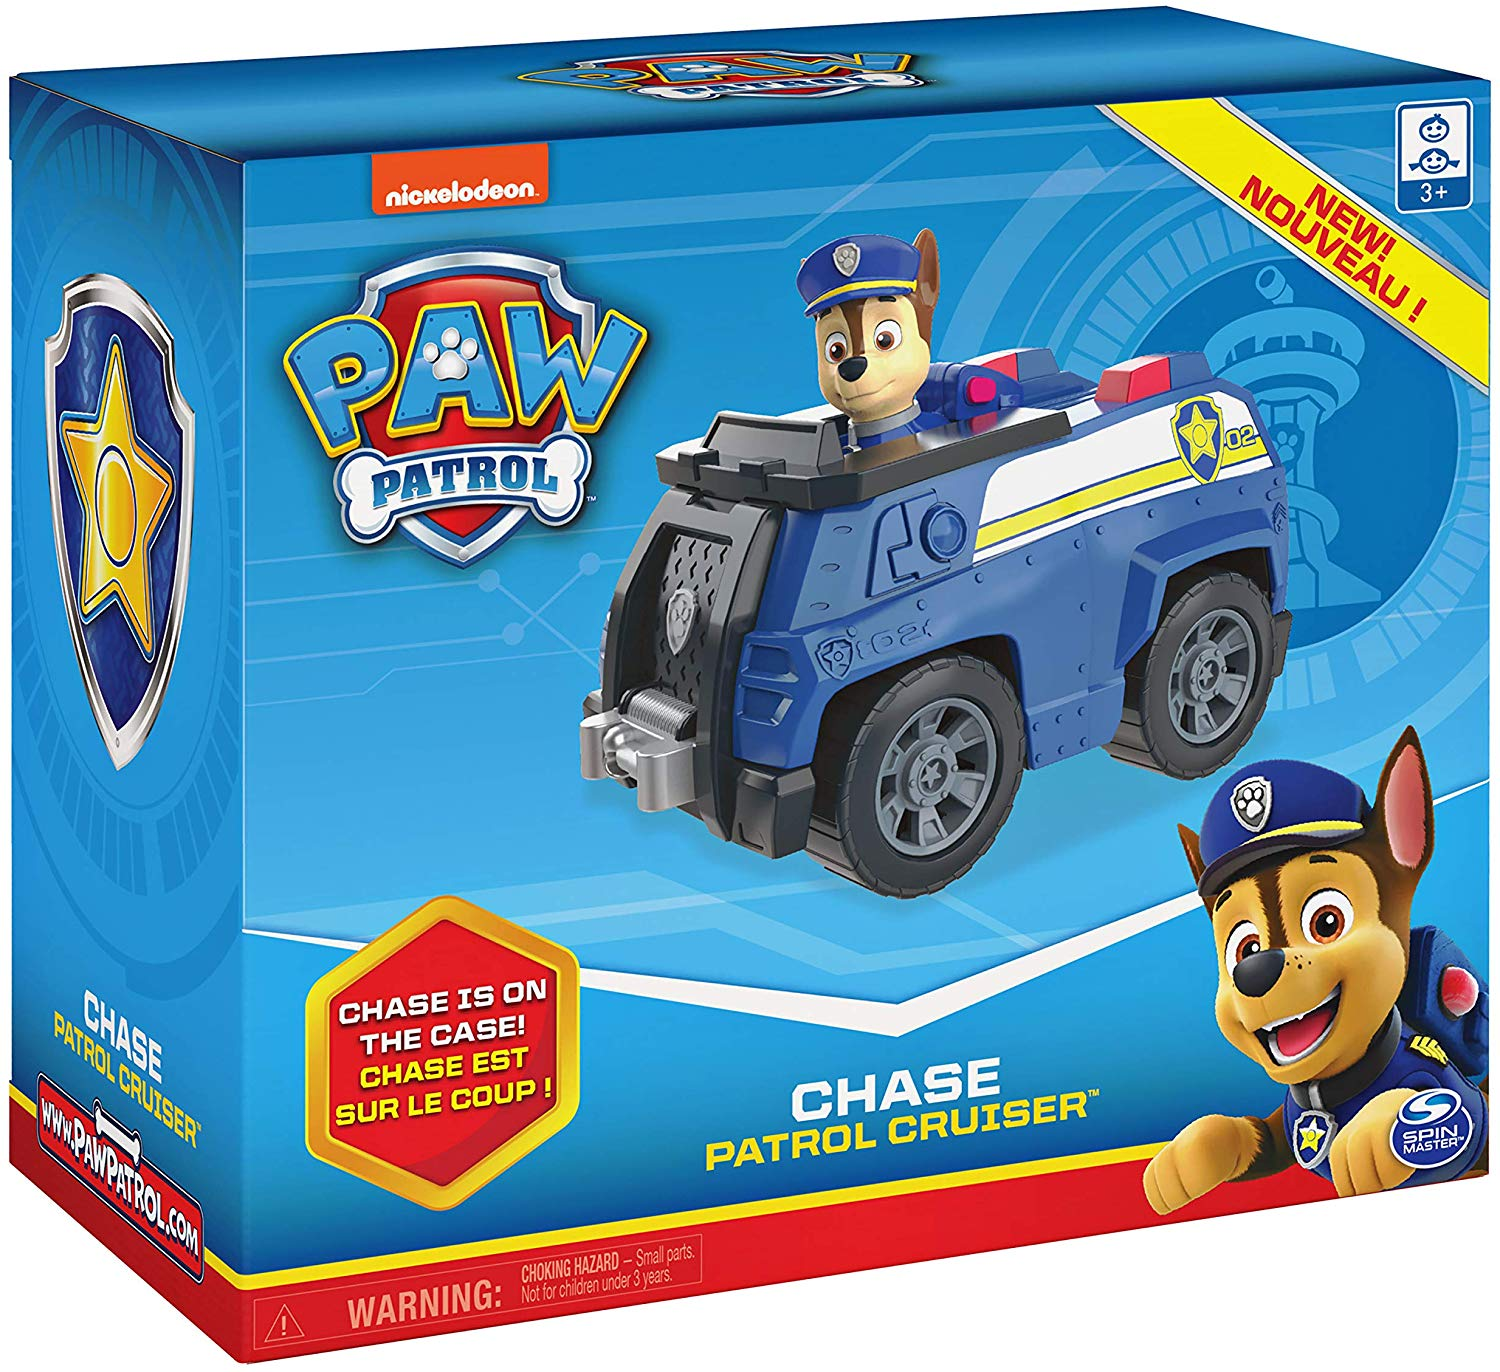 Paw Patrol Chase Patrol Cruiser Vehicle with Collectible Figure